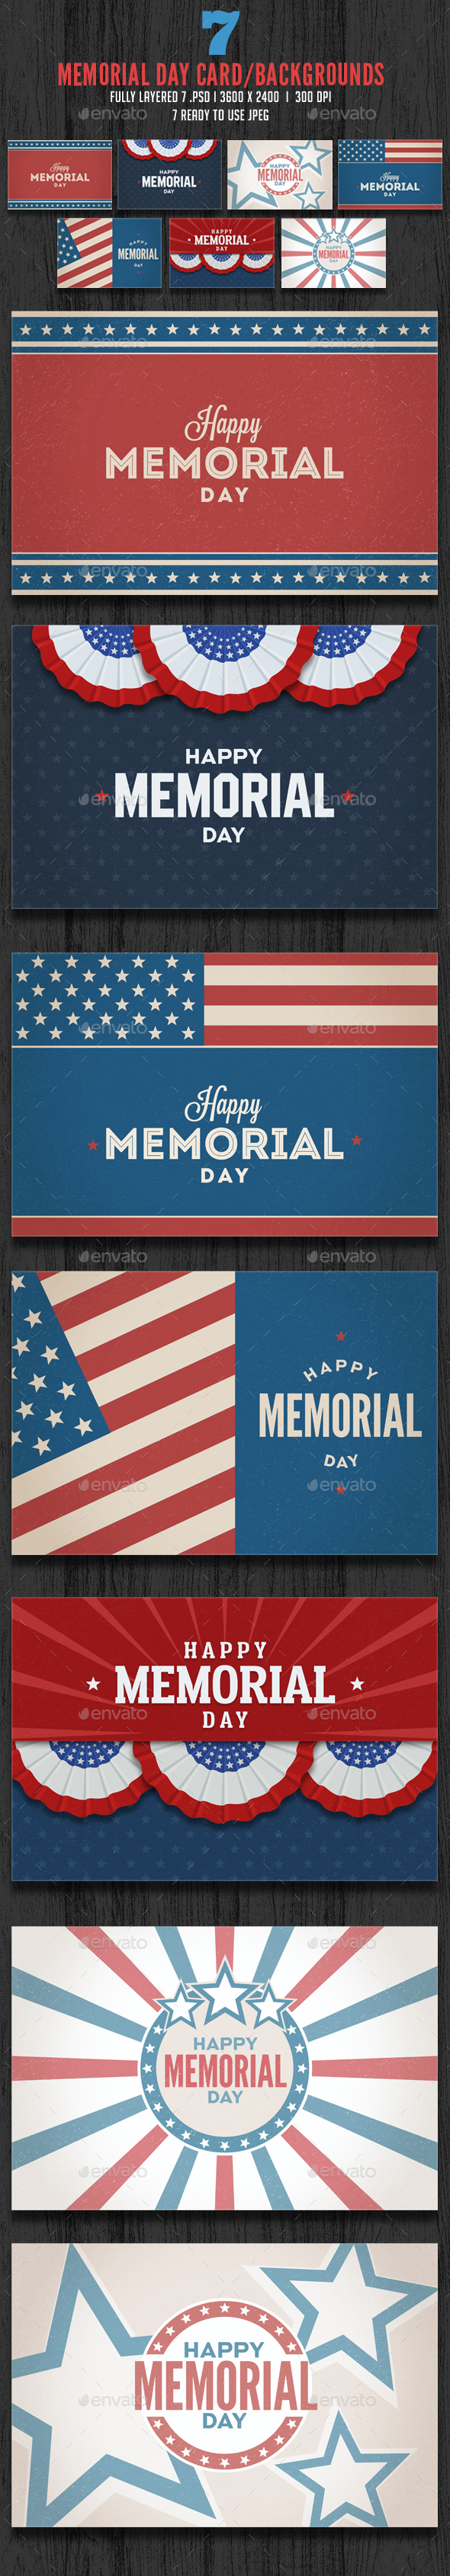 Memorial Day / July 4th Card Backgrounds - Backgrounds Graphics